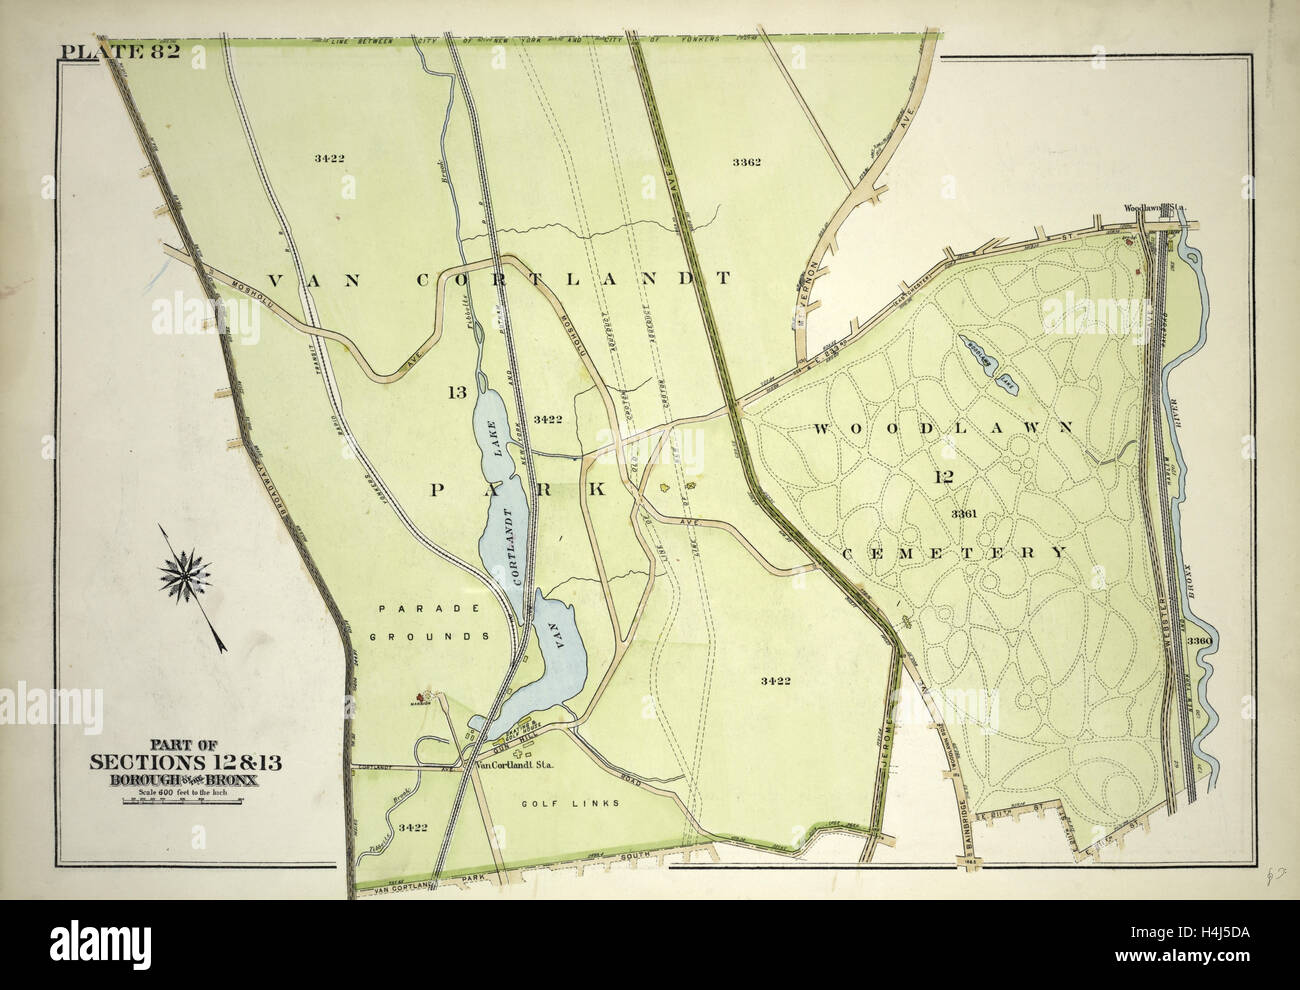 Plate 82, Part of Section 13, Borough of the Bronx. Bounded by Broadway, Van Cortlandt Park South, Gun Hill Road - Stock Image